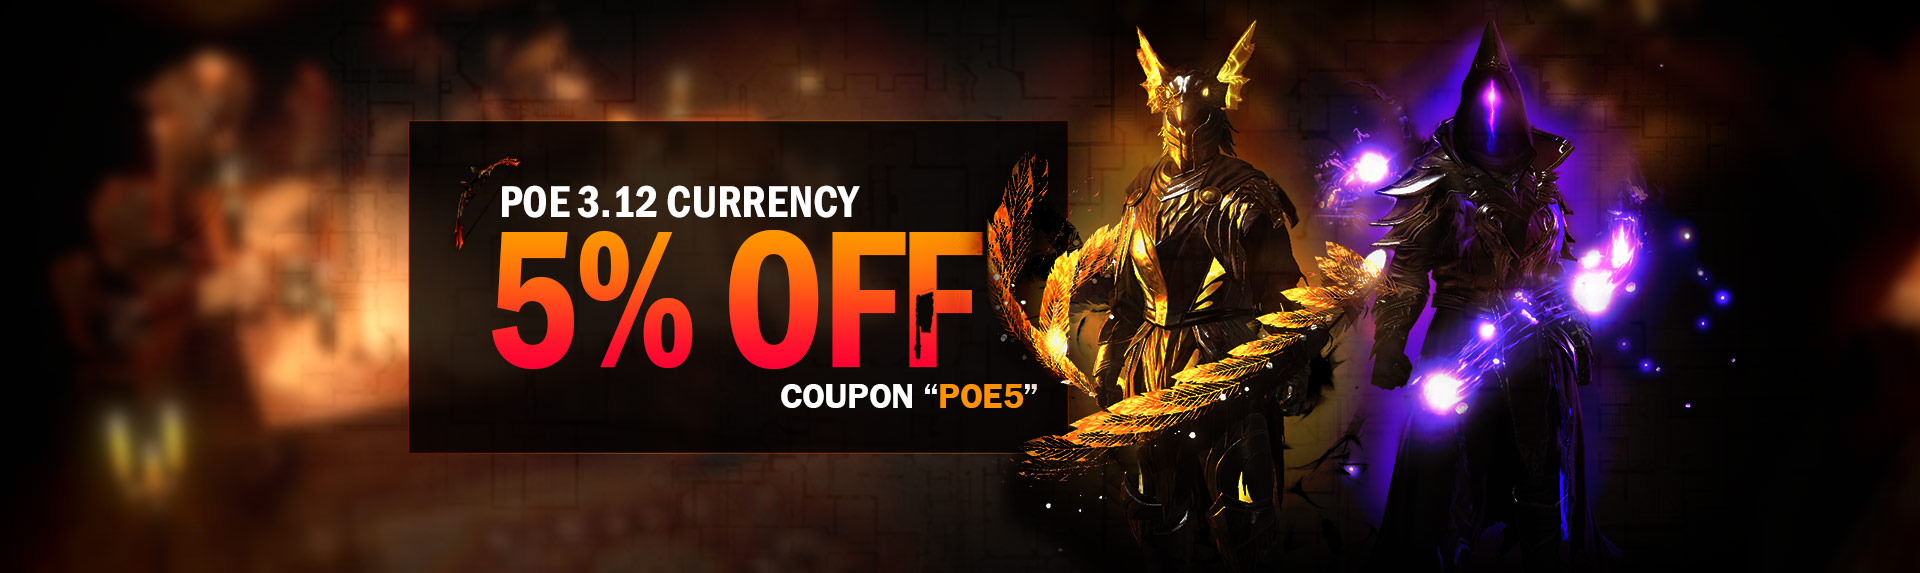 PoE Currency Heist Hot Sale